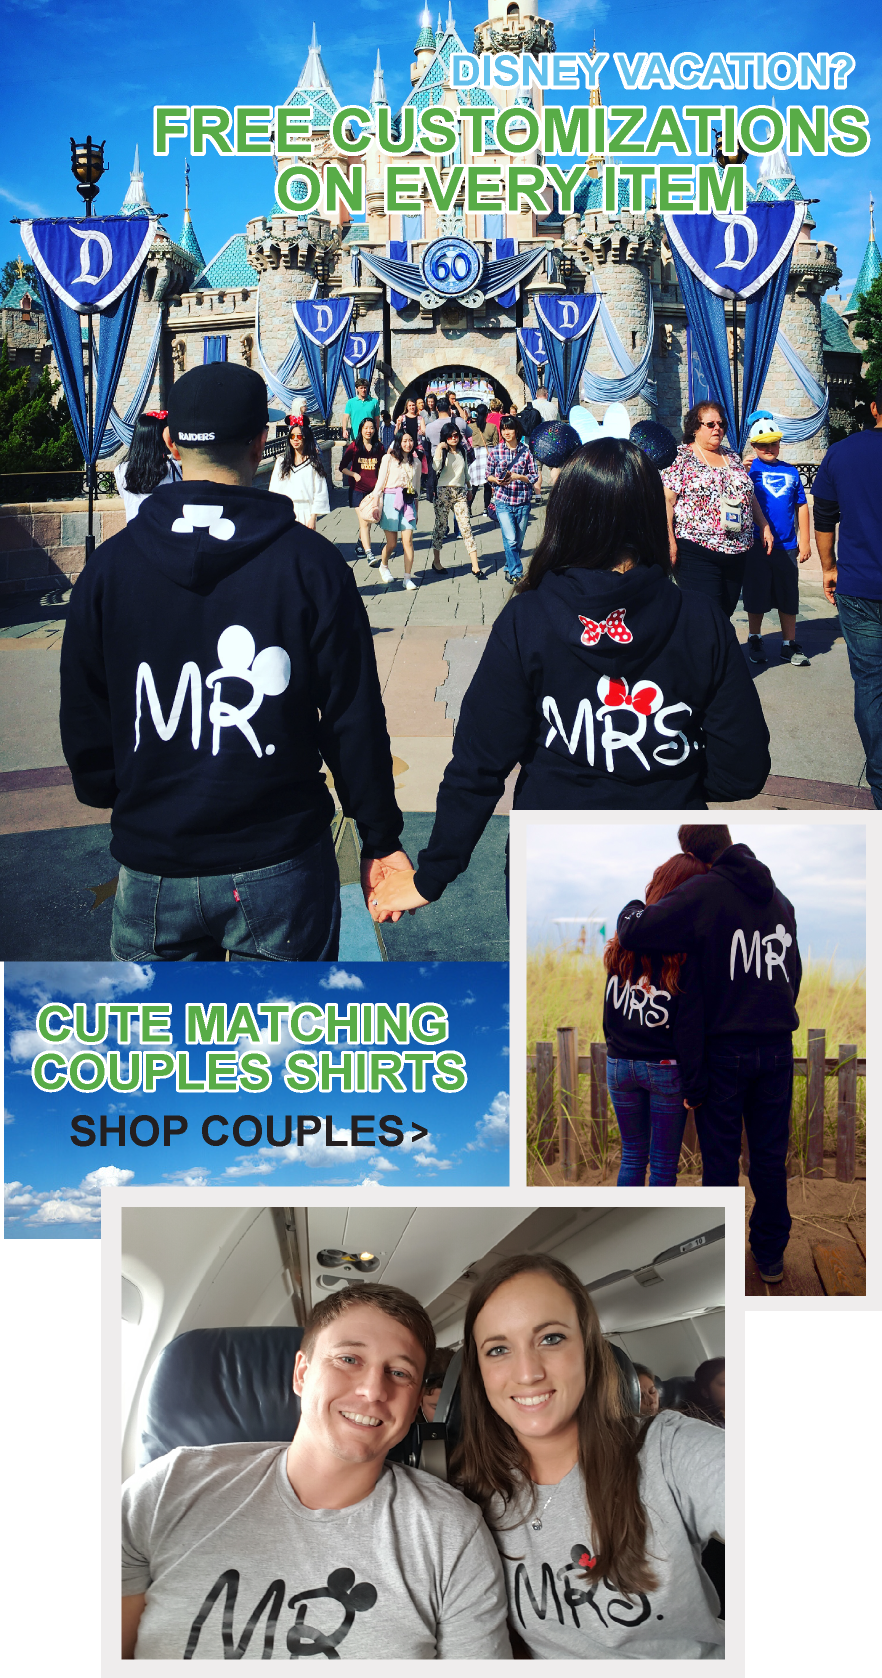 Mr and Mrs couples wearing hoodies and t shirts  at Disney World